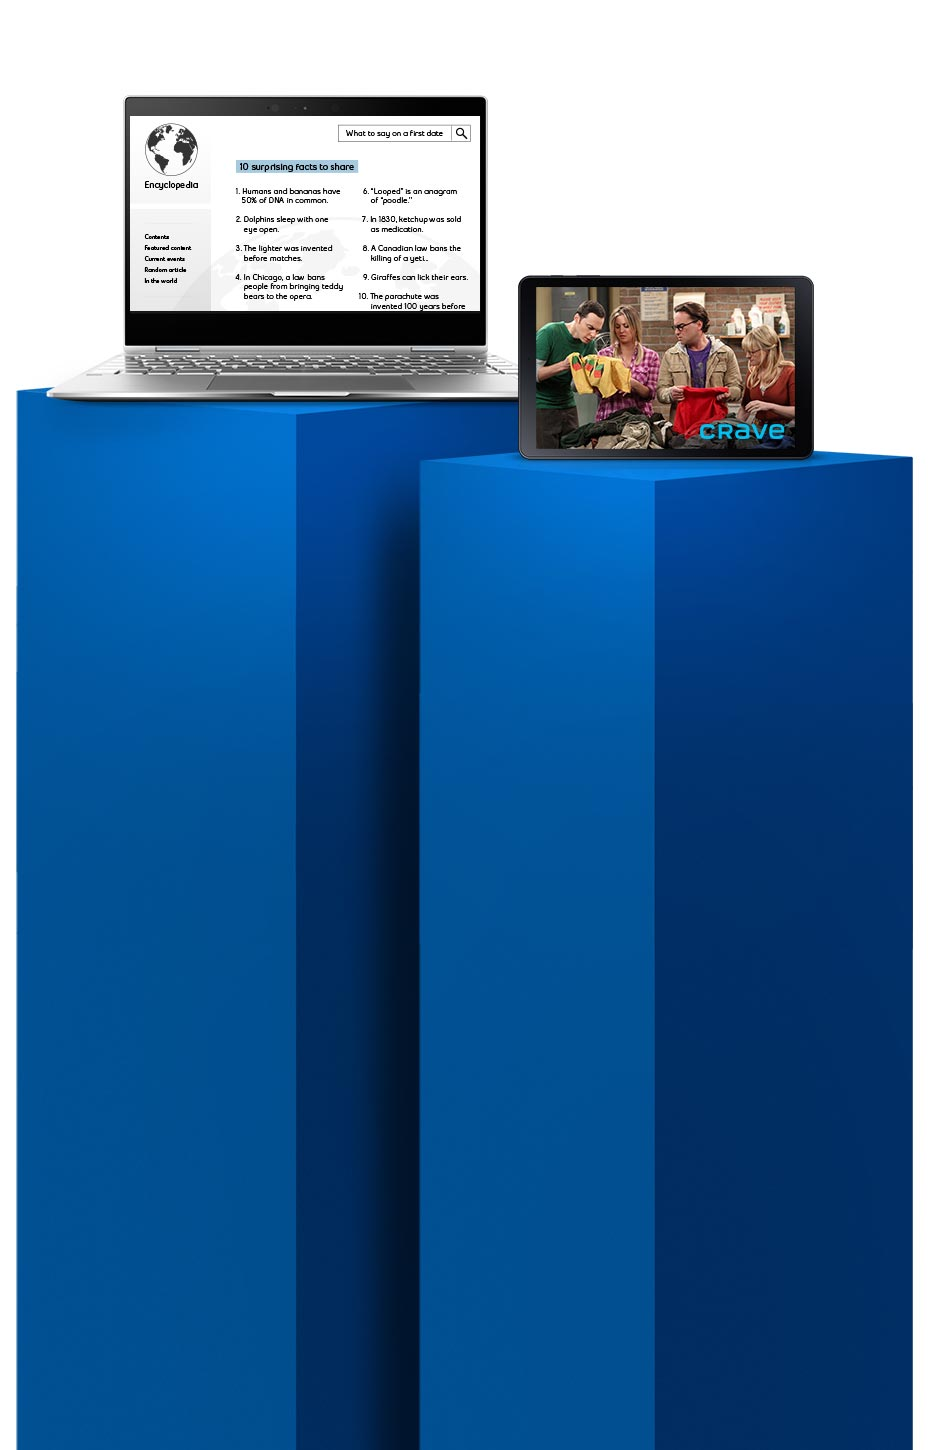 Mobile phones, TV, Internet and Home phone service | Bell Canada